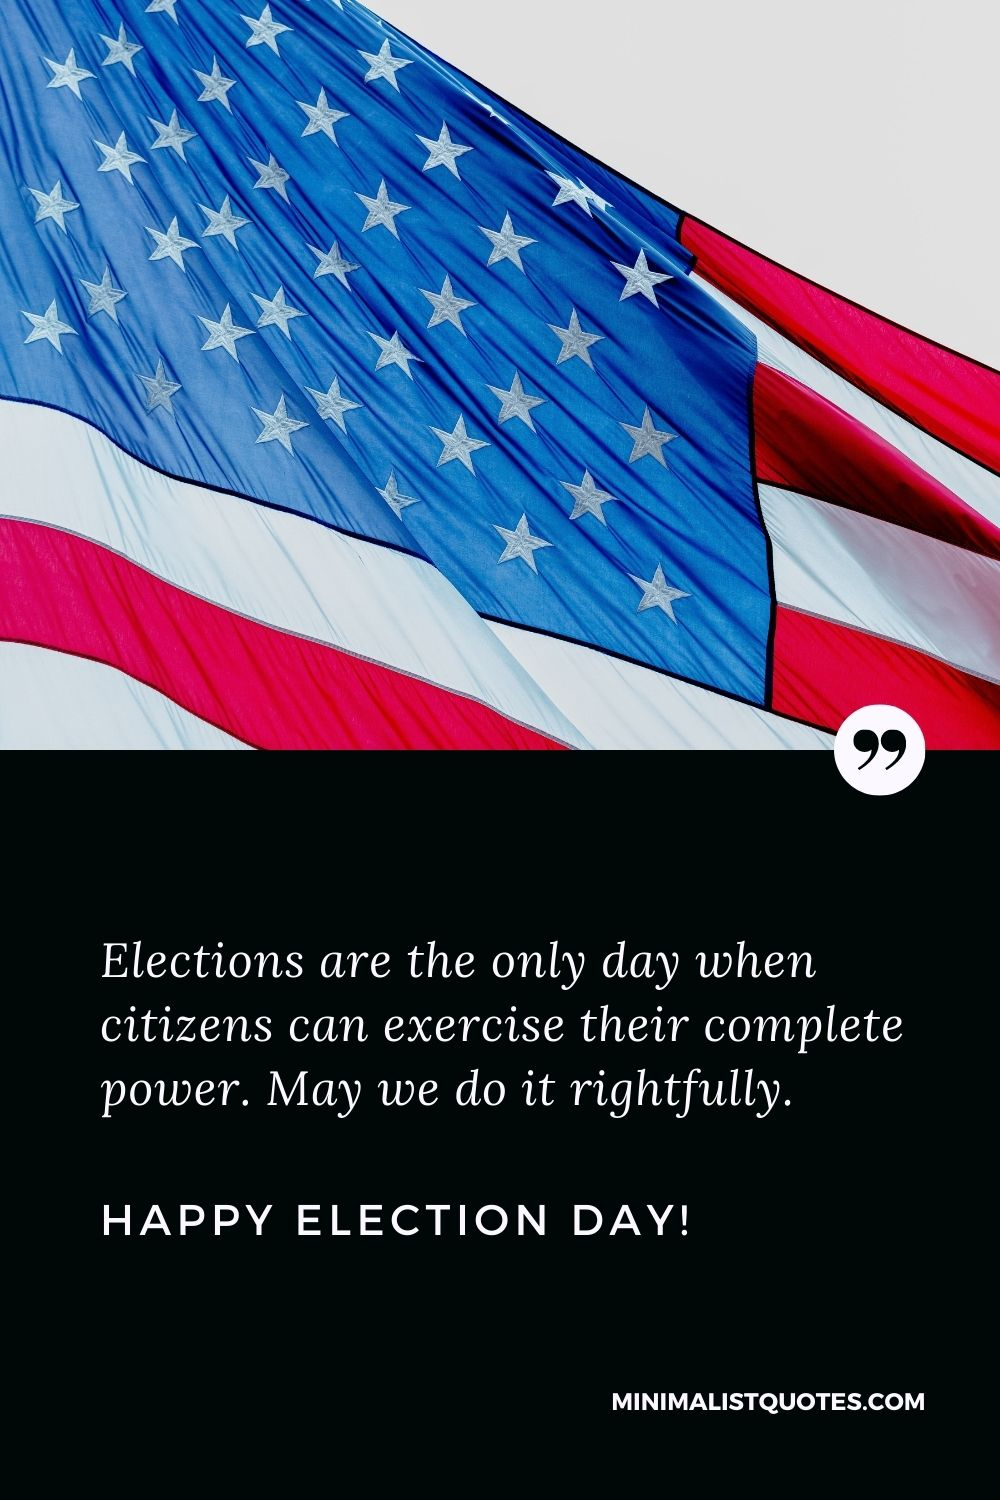 Election Day Quote, Wish & Message With Image: Elections are the only day when citizens can exercise their complete power. May we do it rightfully. Happy Election Day!